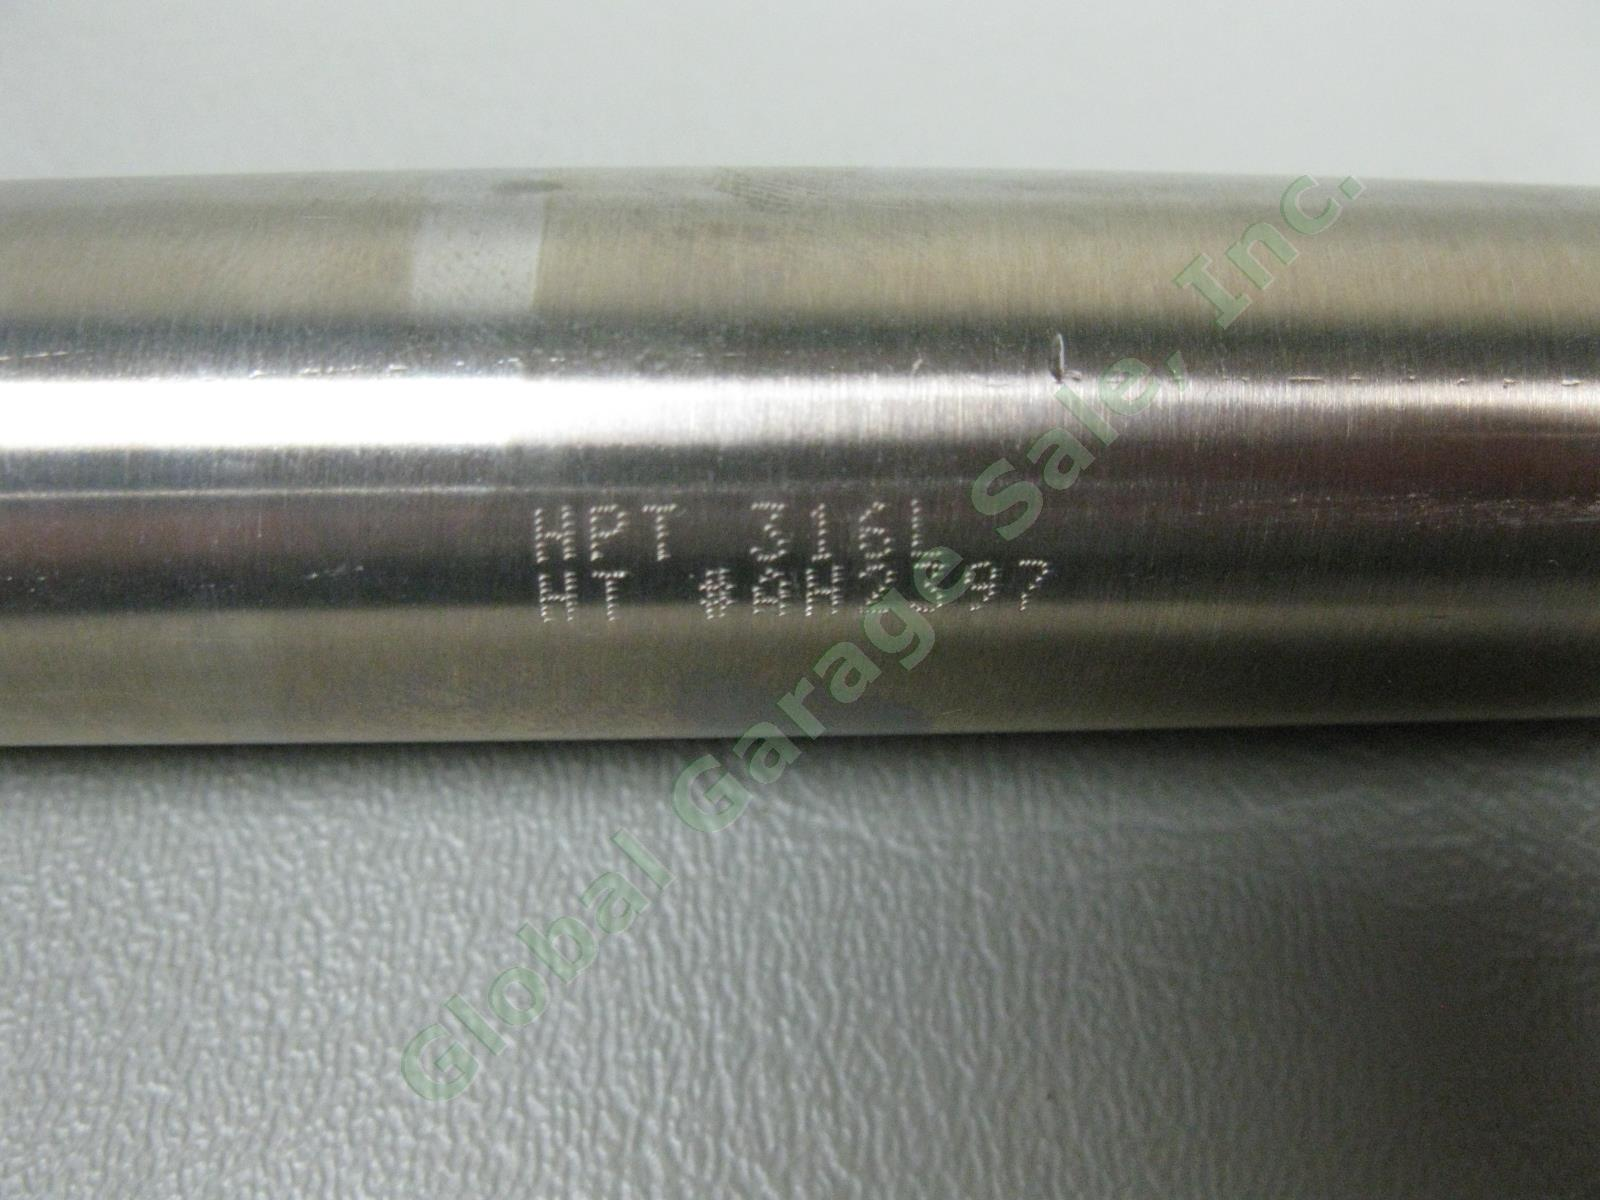 NEW-1-034-SS-OD-x-CU-Lead-Copper-Joiner-Transition-12-25-034-Pipe-Cleaned-O2-Service thumbnail 2